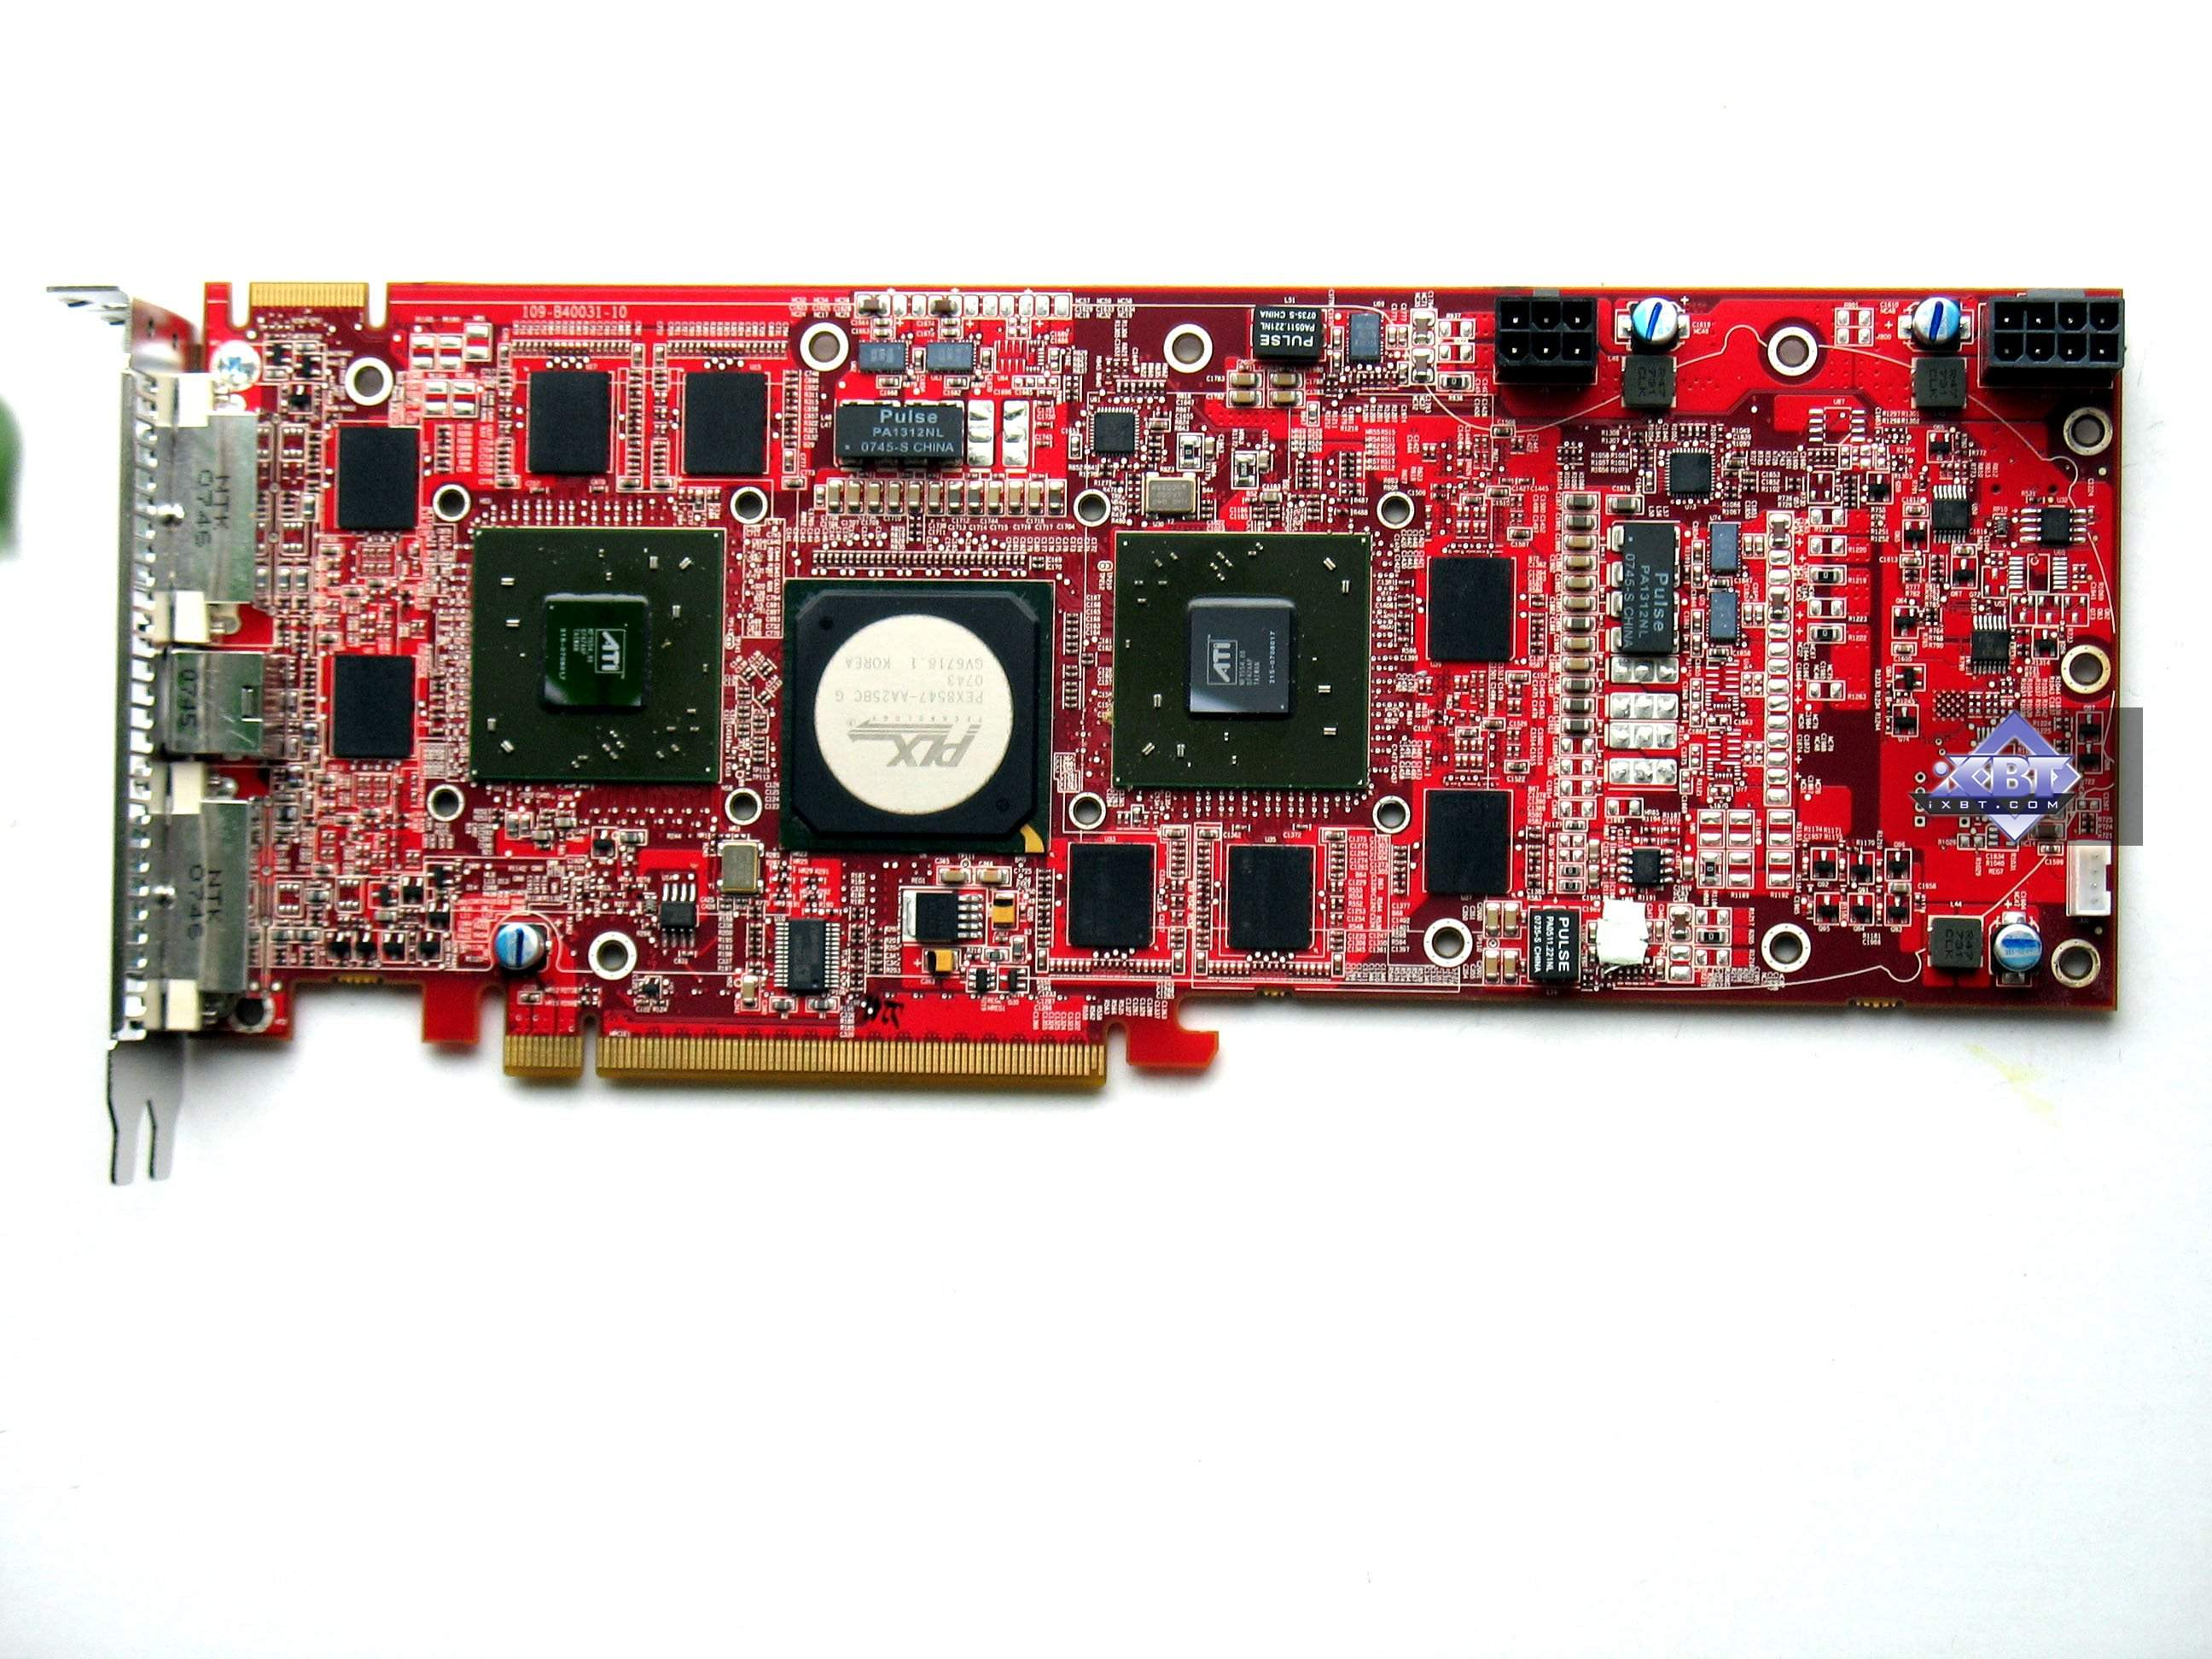 AMD RADEON HD 3870 MOBILITY GRAPHICS DRIVERS FOR WINDOWS VISTA